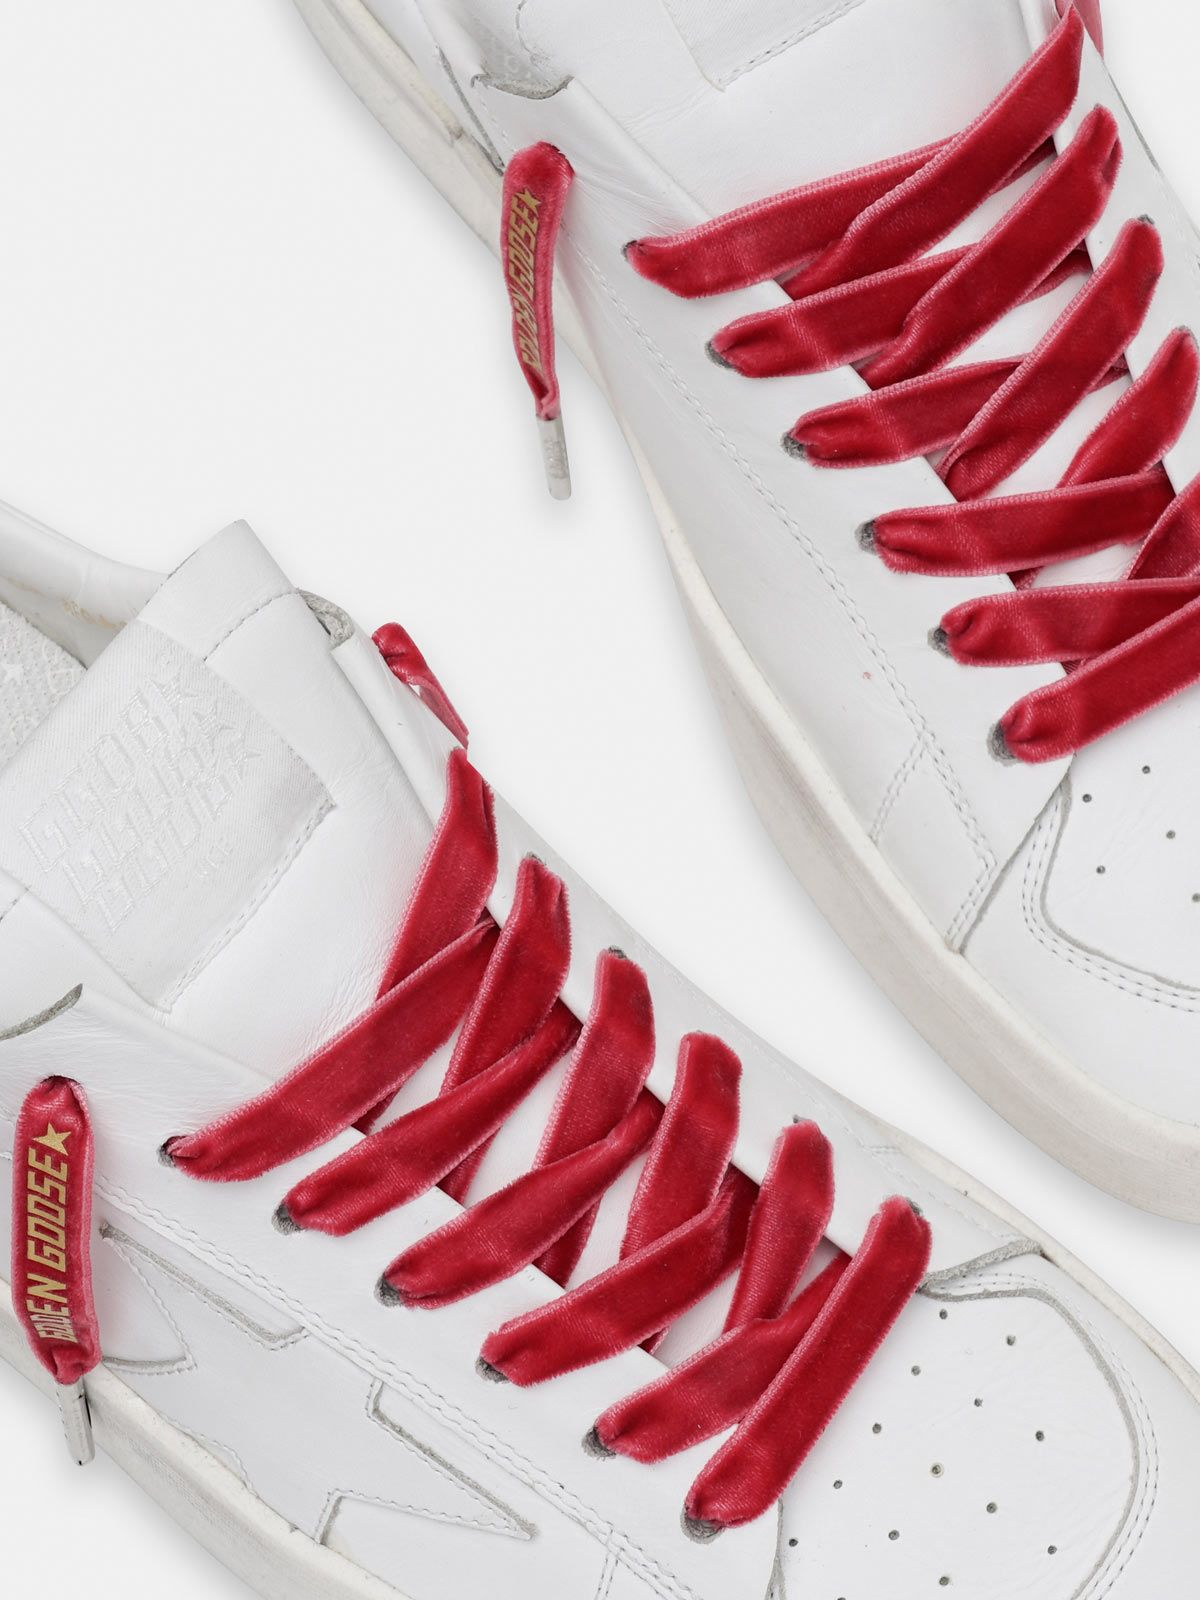 Golden Goose - Women's red velvet laces with gold logo in